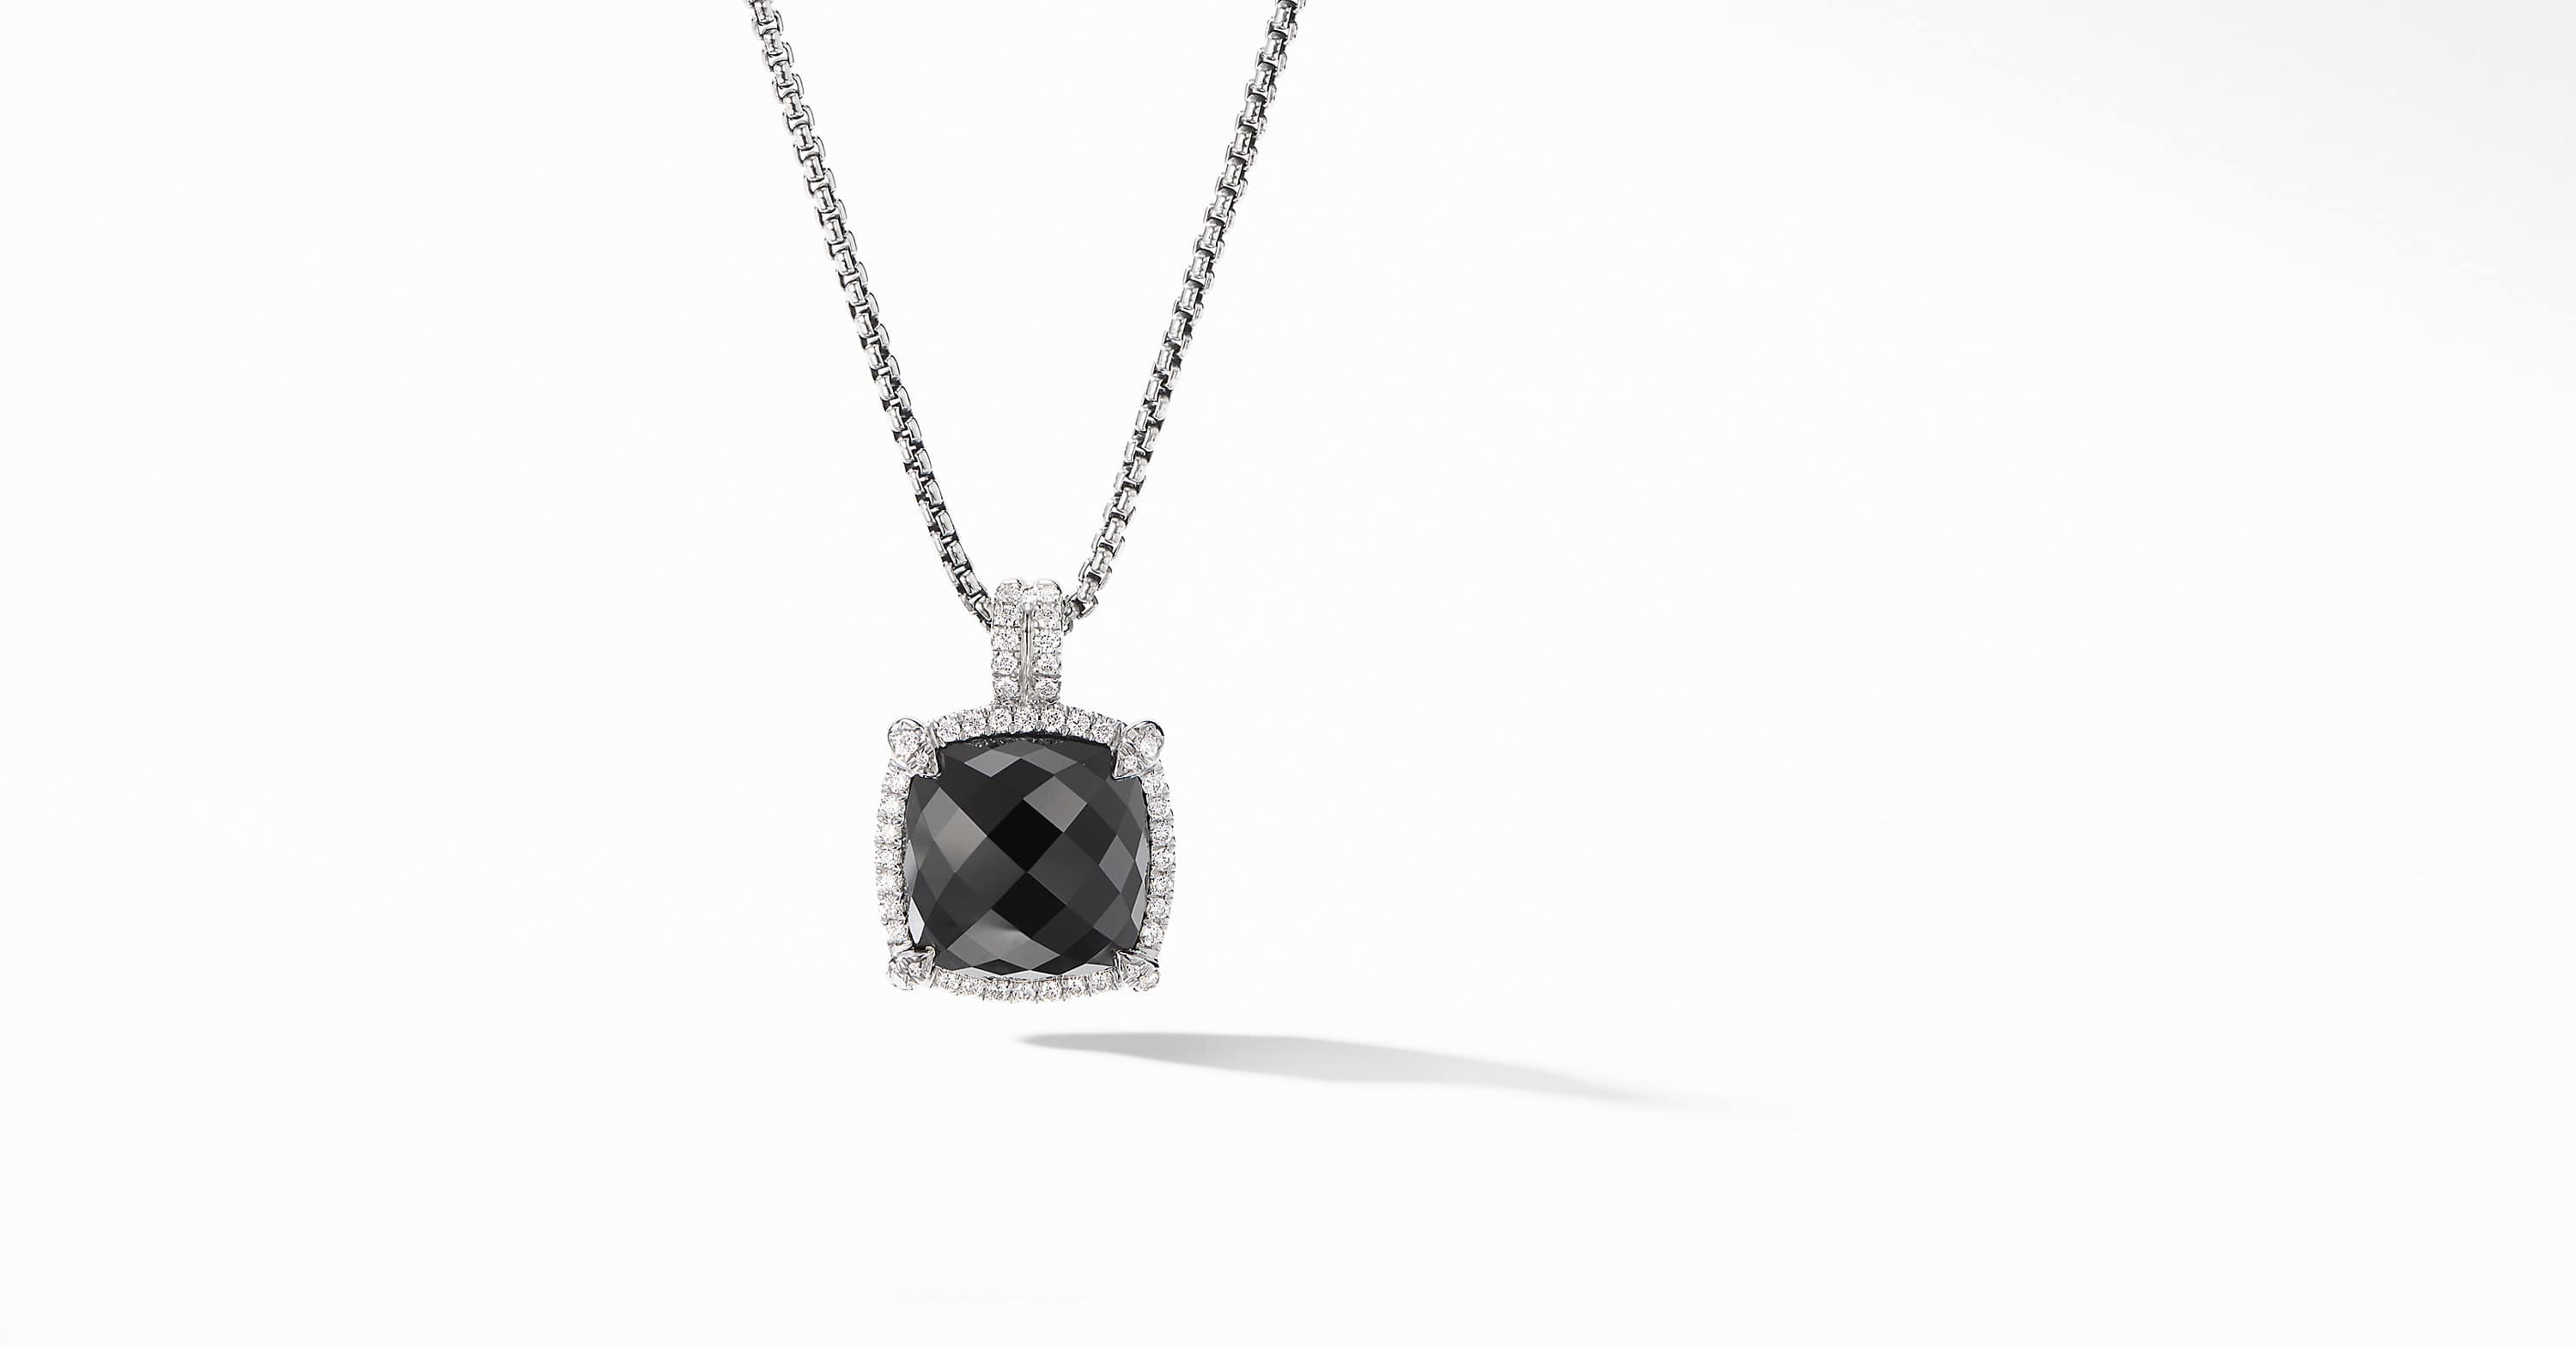 Chatelaine Pavé Bezel Pendant Necklace, 14mm